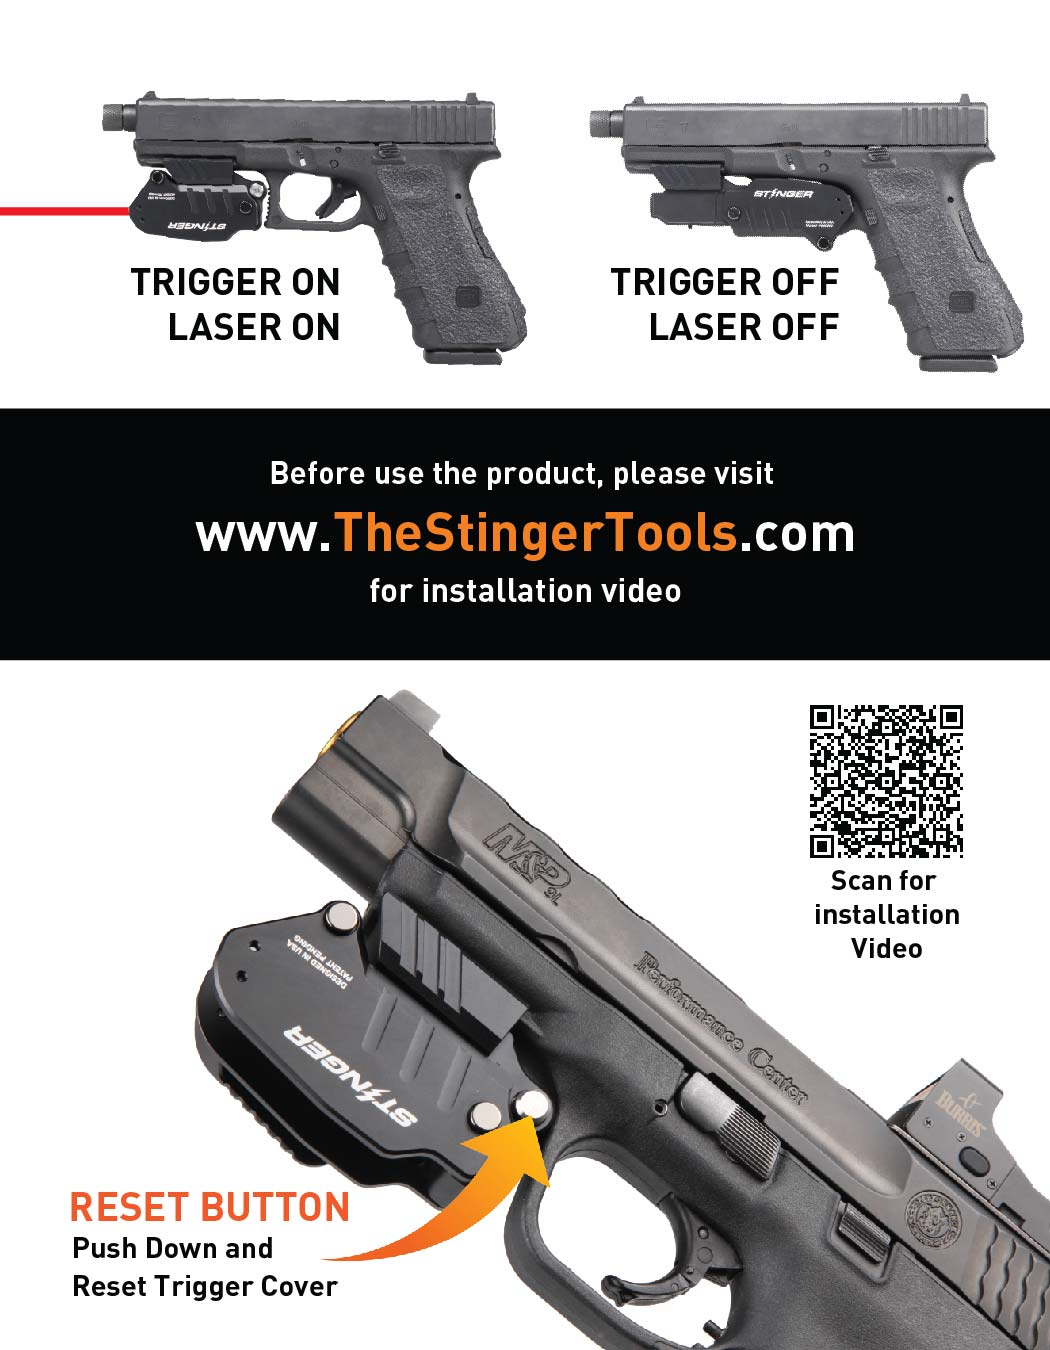 Stinger Concealment with Laser Sight System: Trigger Guard Protection Cover, Belt Clip Minimalist Carry Solution